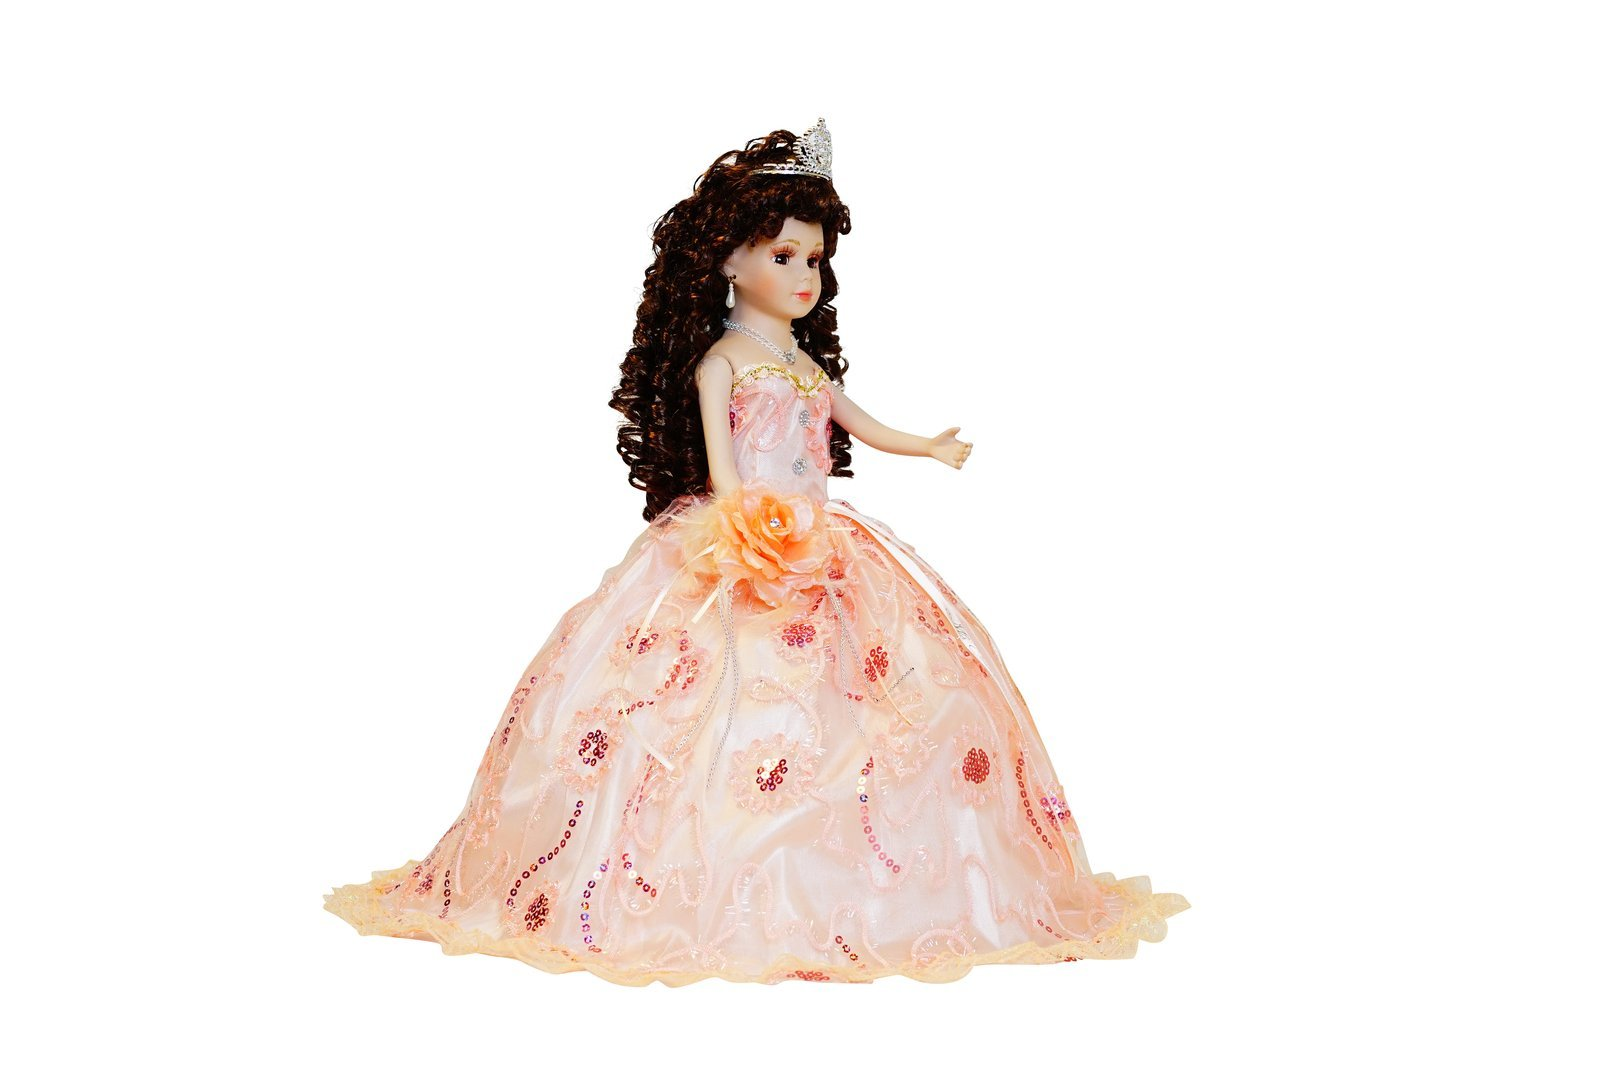 Kinnex Collections by Amanda 18'' Porcelain Quinceanera Umbrella Doll (Table Centerpiece)~ Peach~ KK18725-28 by Kinnex Collections by Amanda (Image #3)